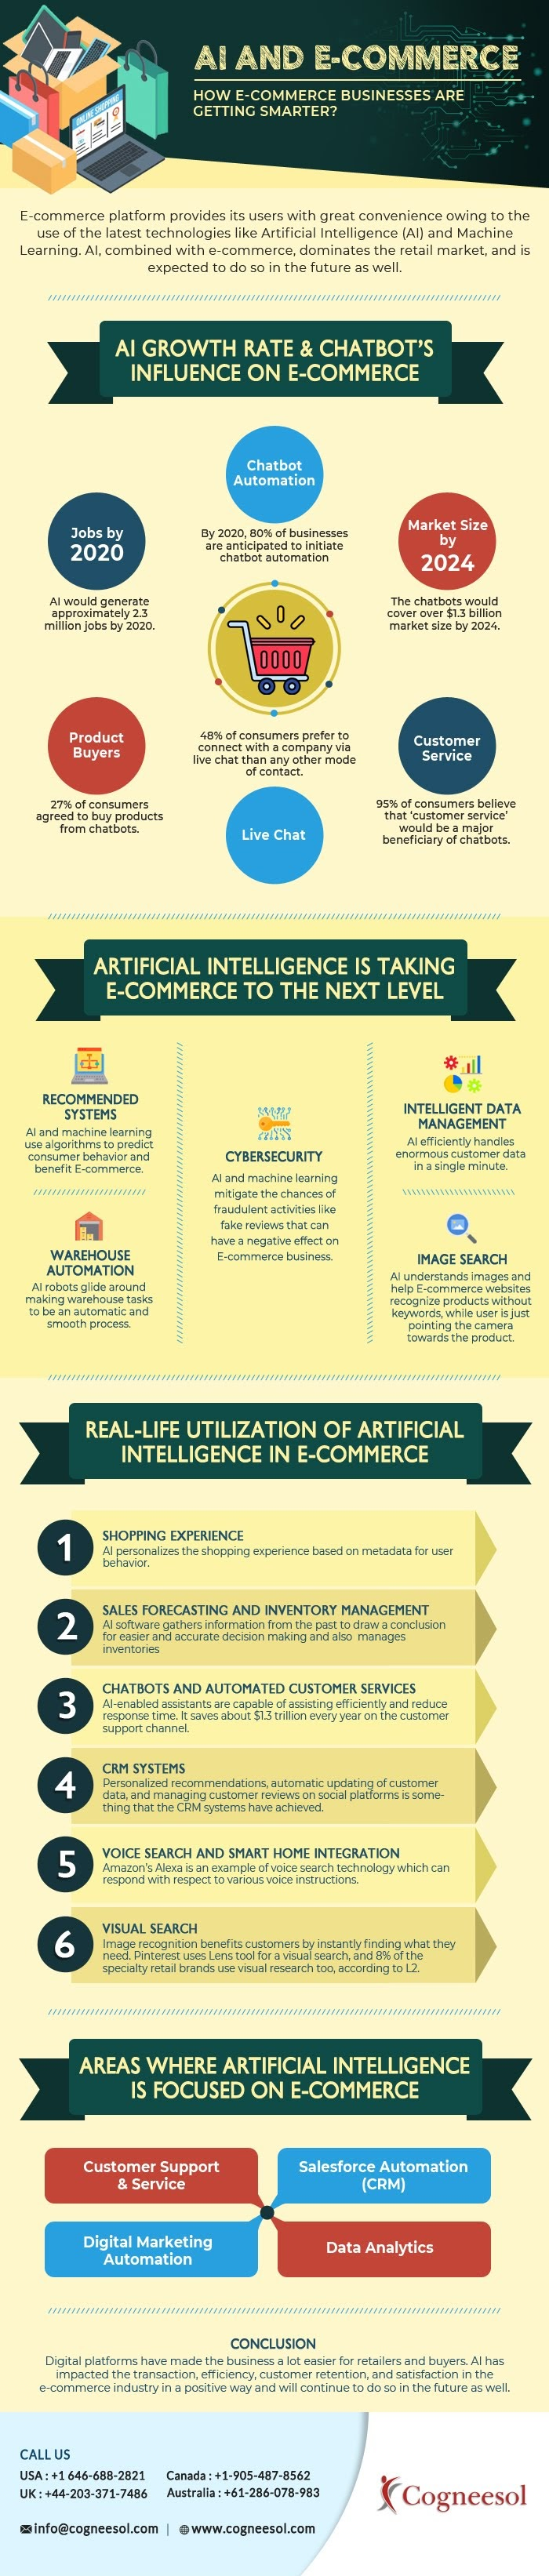 AI and E-commerce: How E-commerce Businesses are Getting Smarter? #infographic